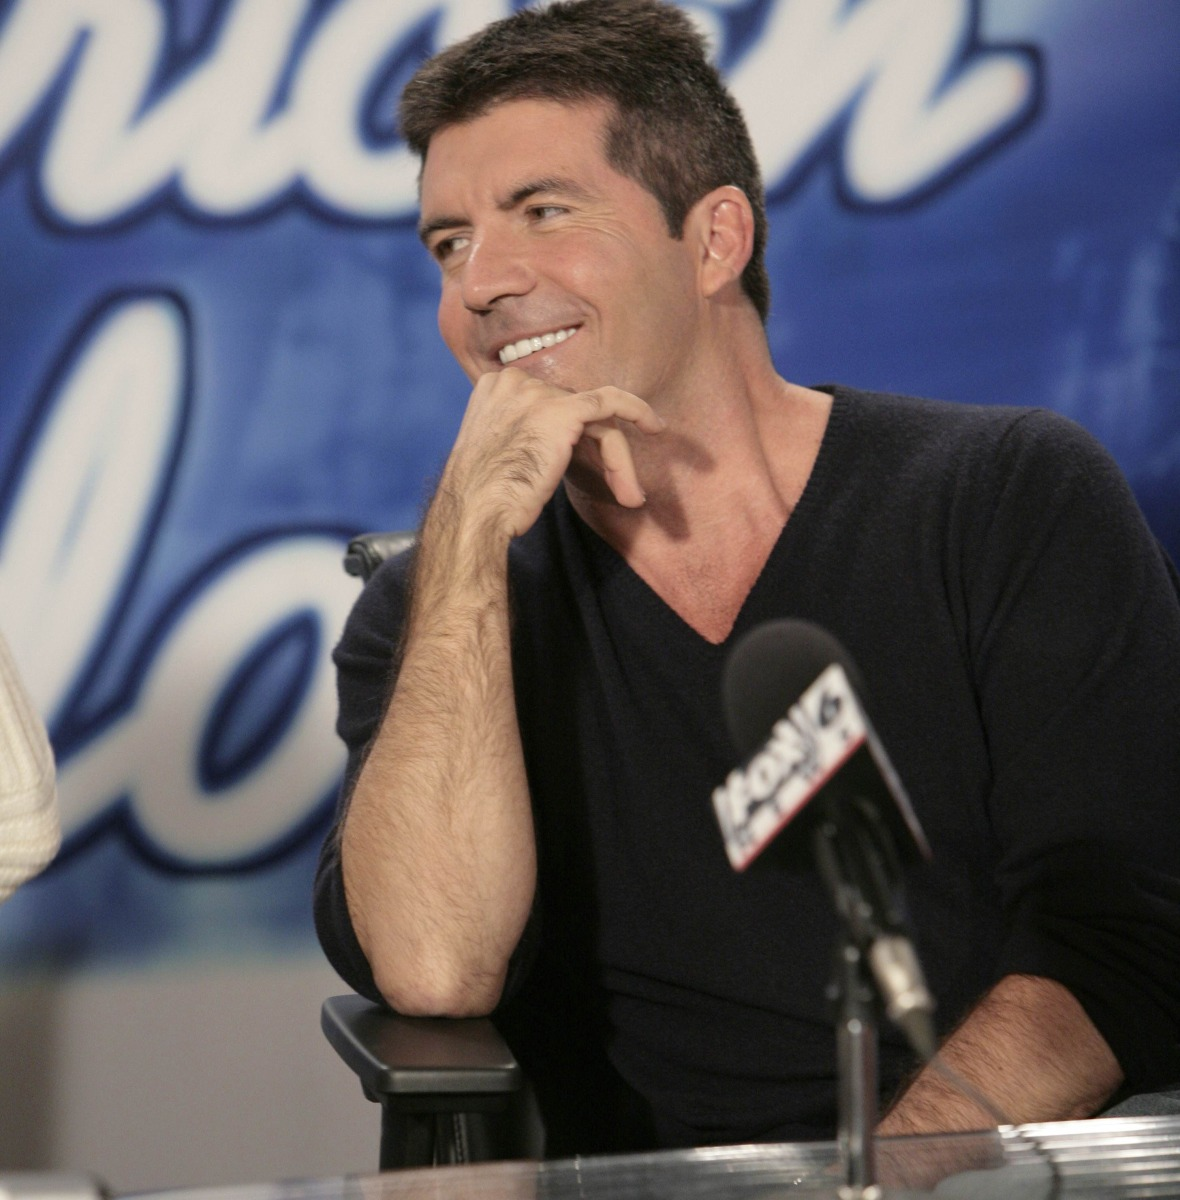 Why Is Simon Cowell So Famous? Inside His Success Story